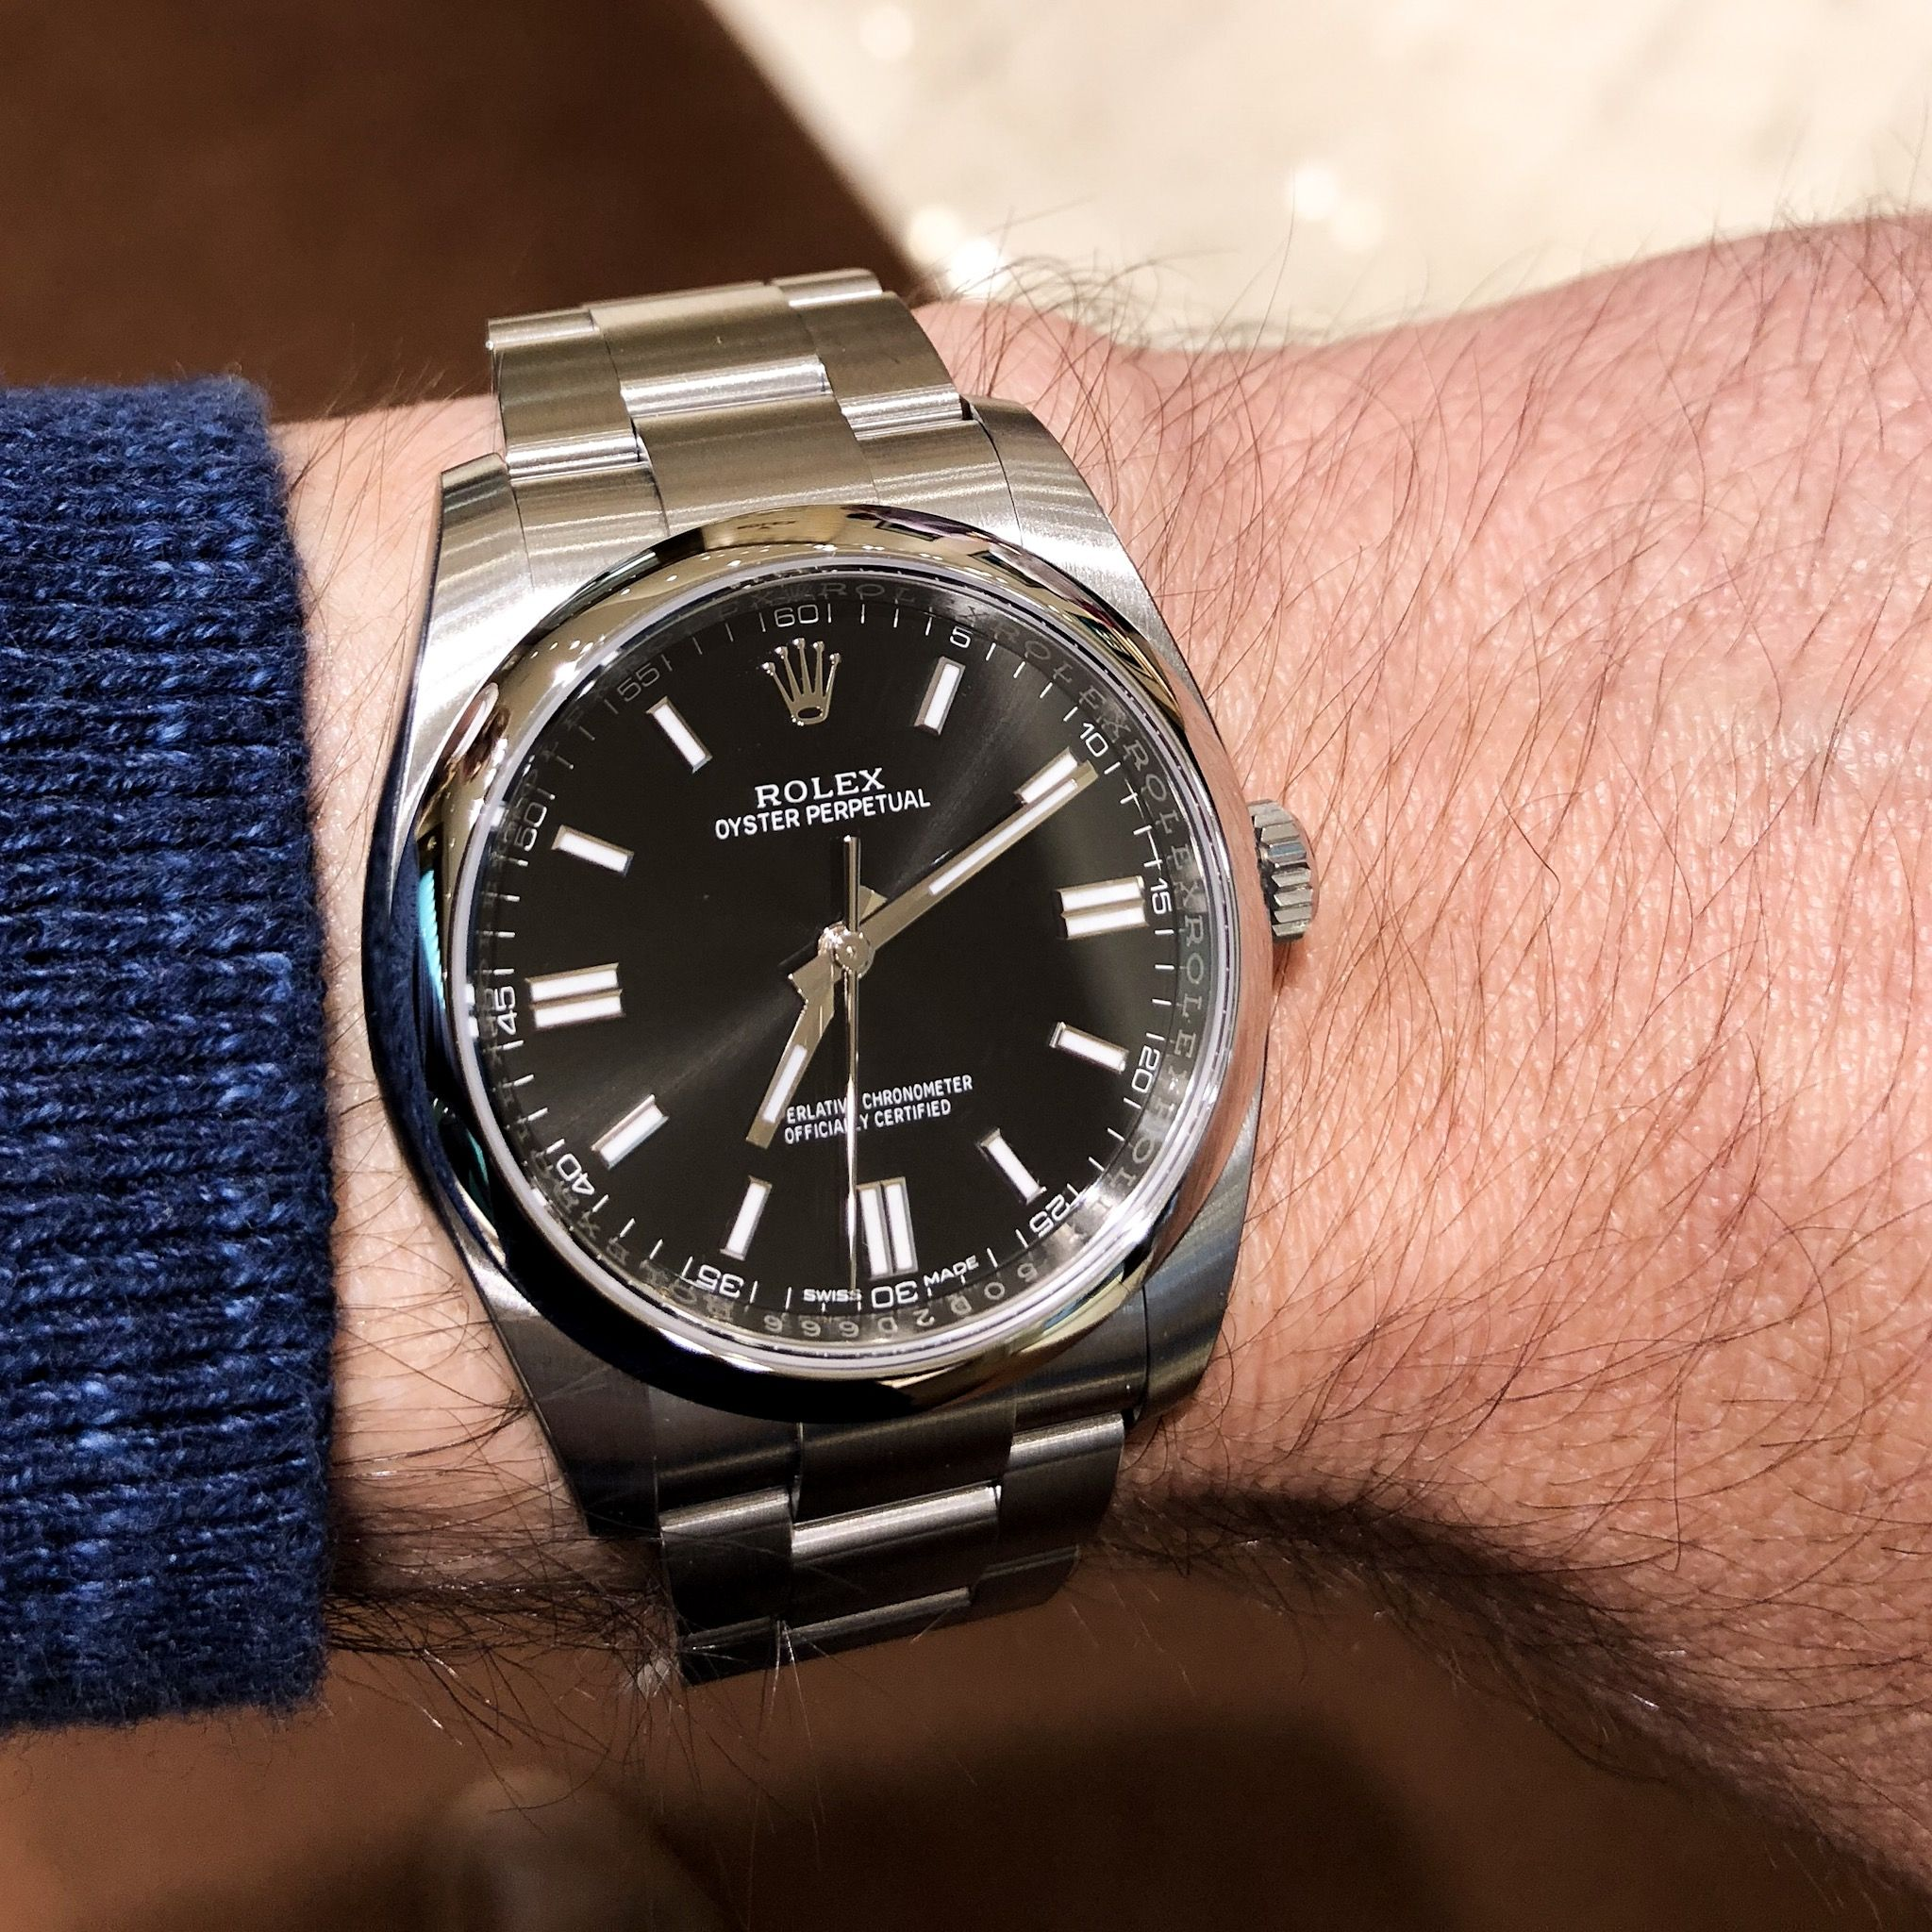 2018 Rolex Oyster Perpetual 116000 Black Face 36mm Watches In